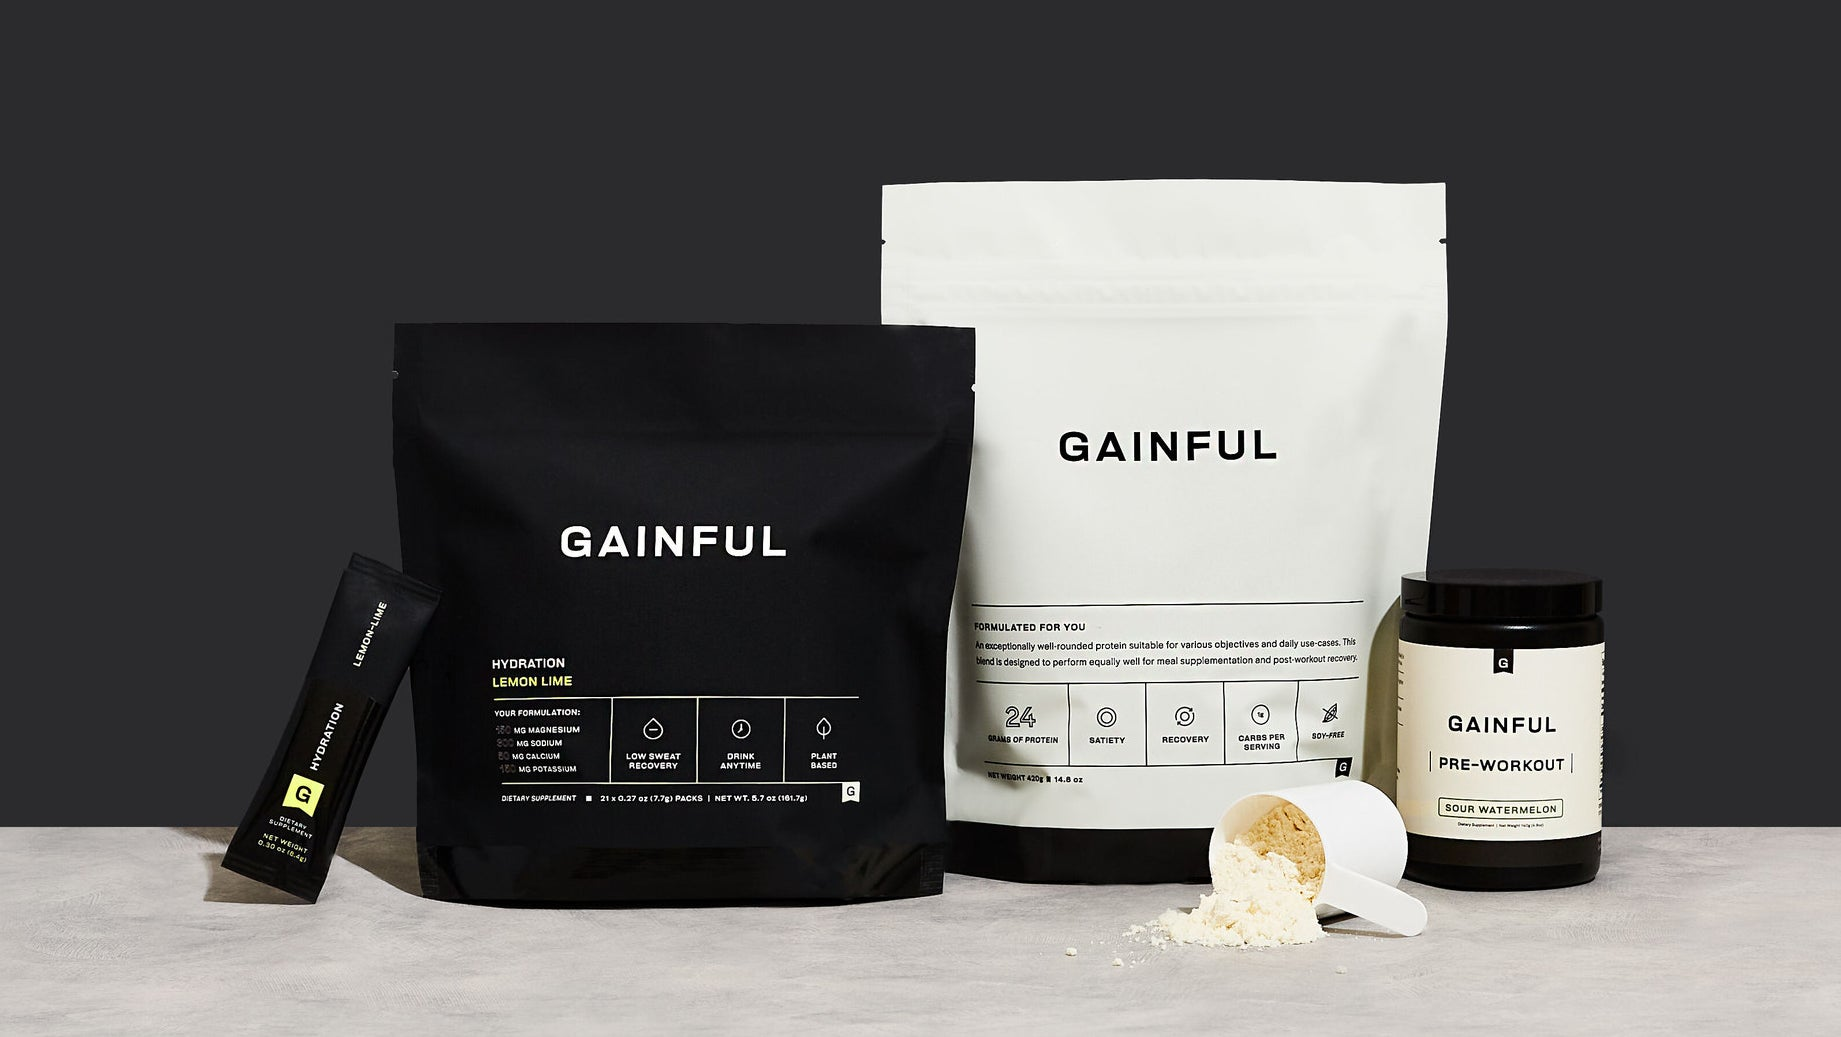 bags of different proteins and pre-workout